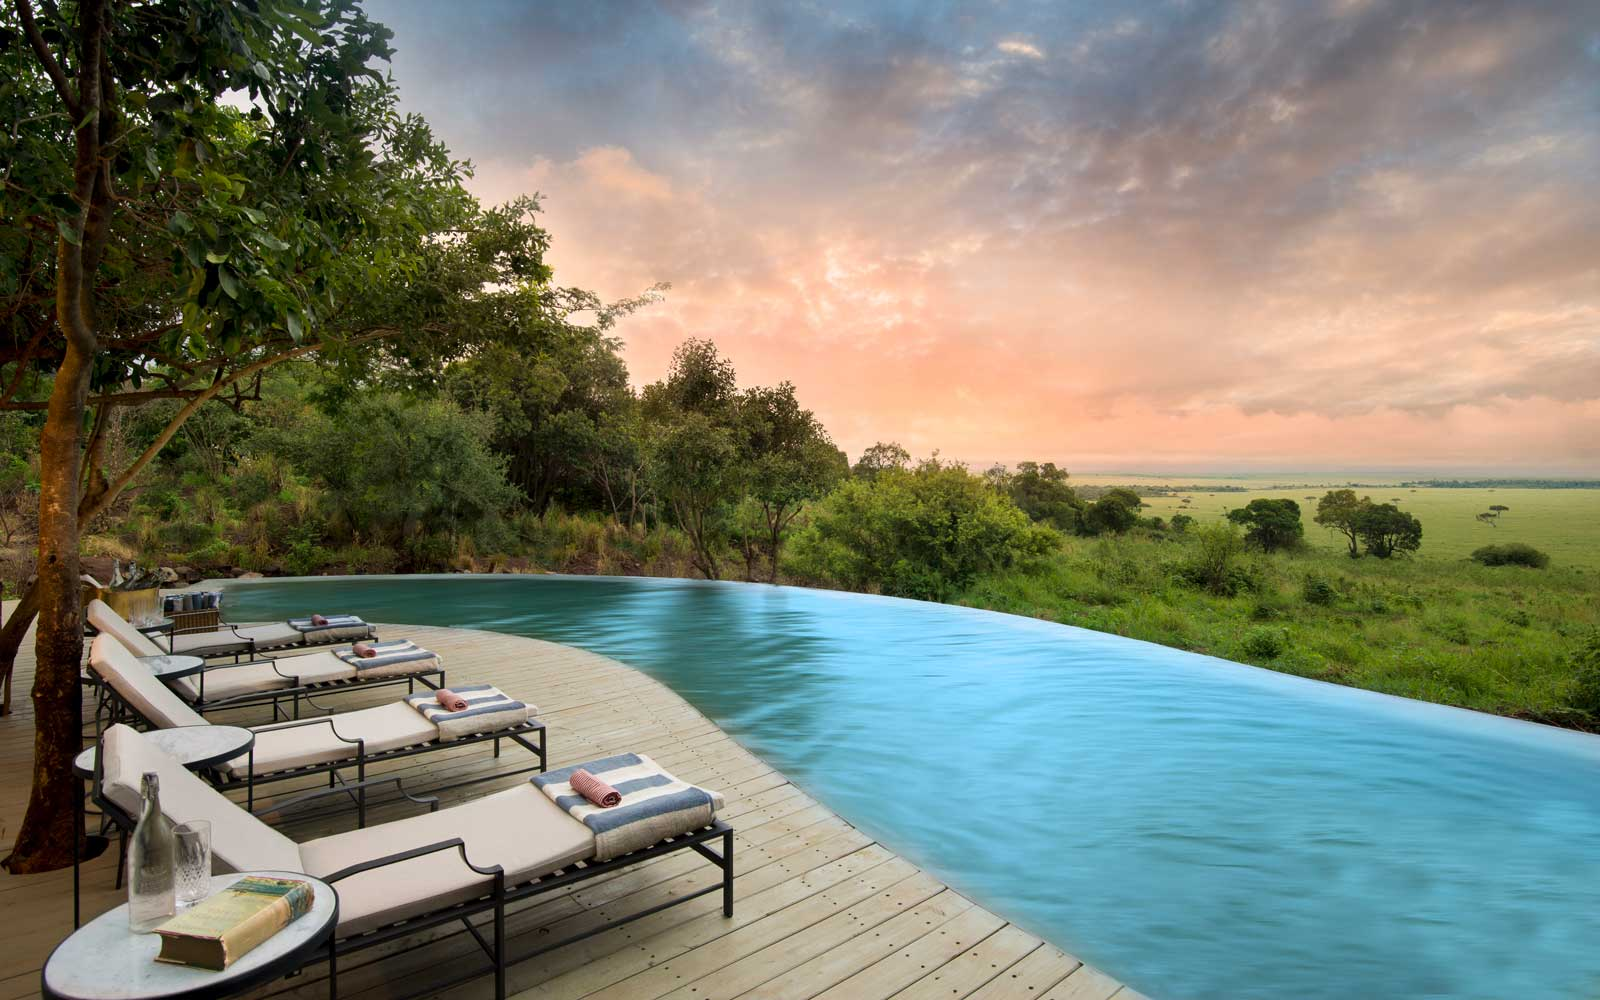 This Property Gives Travelers Front-row Seats to Africa's Wildebeest River Crossing